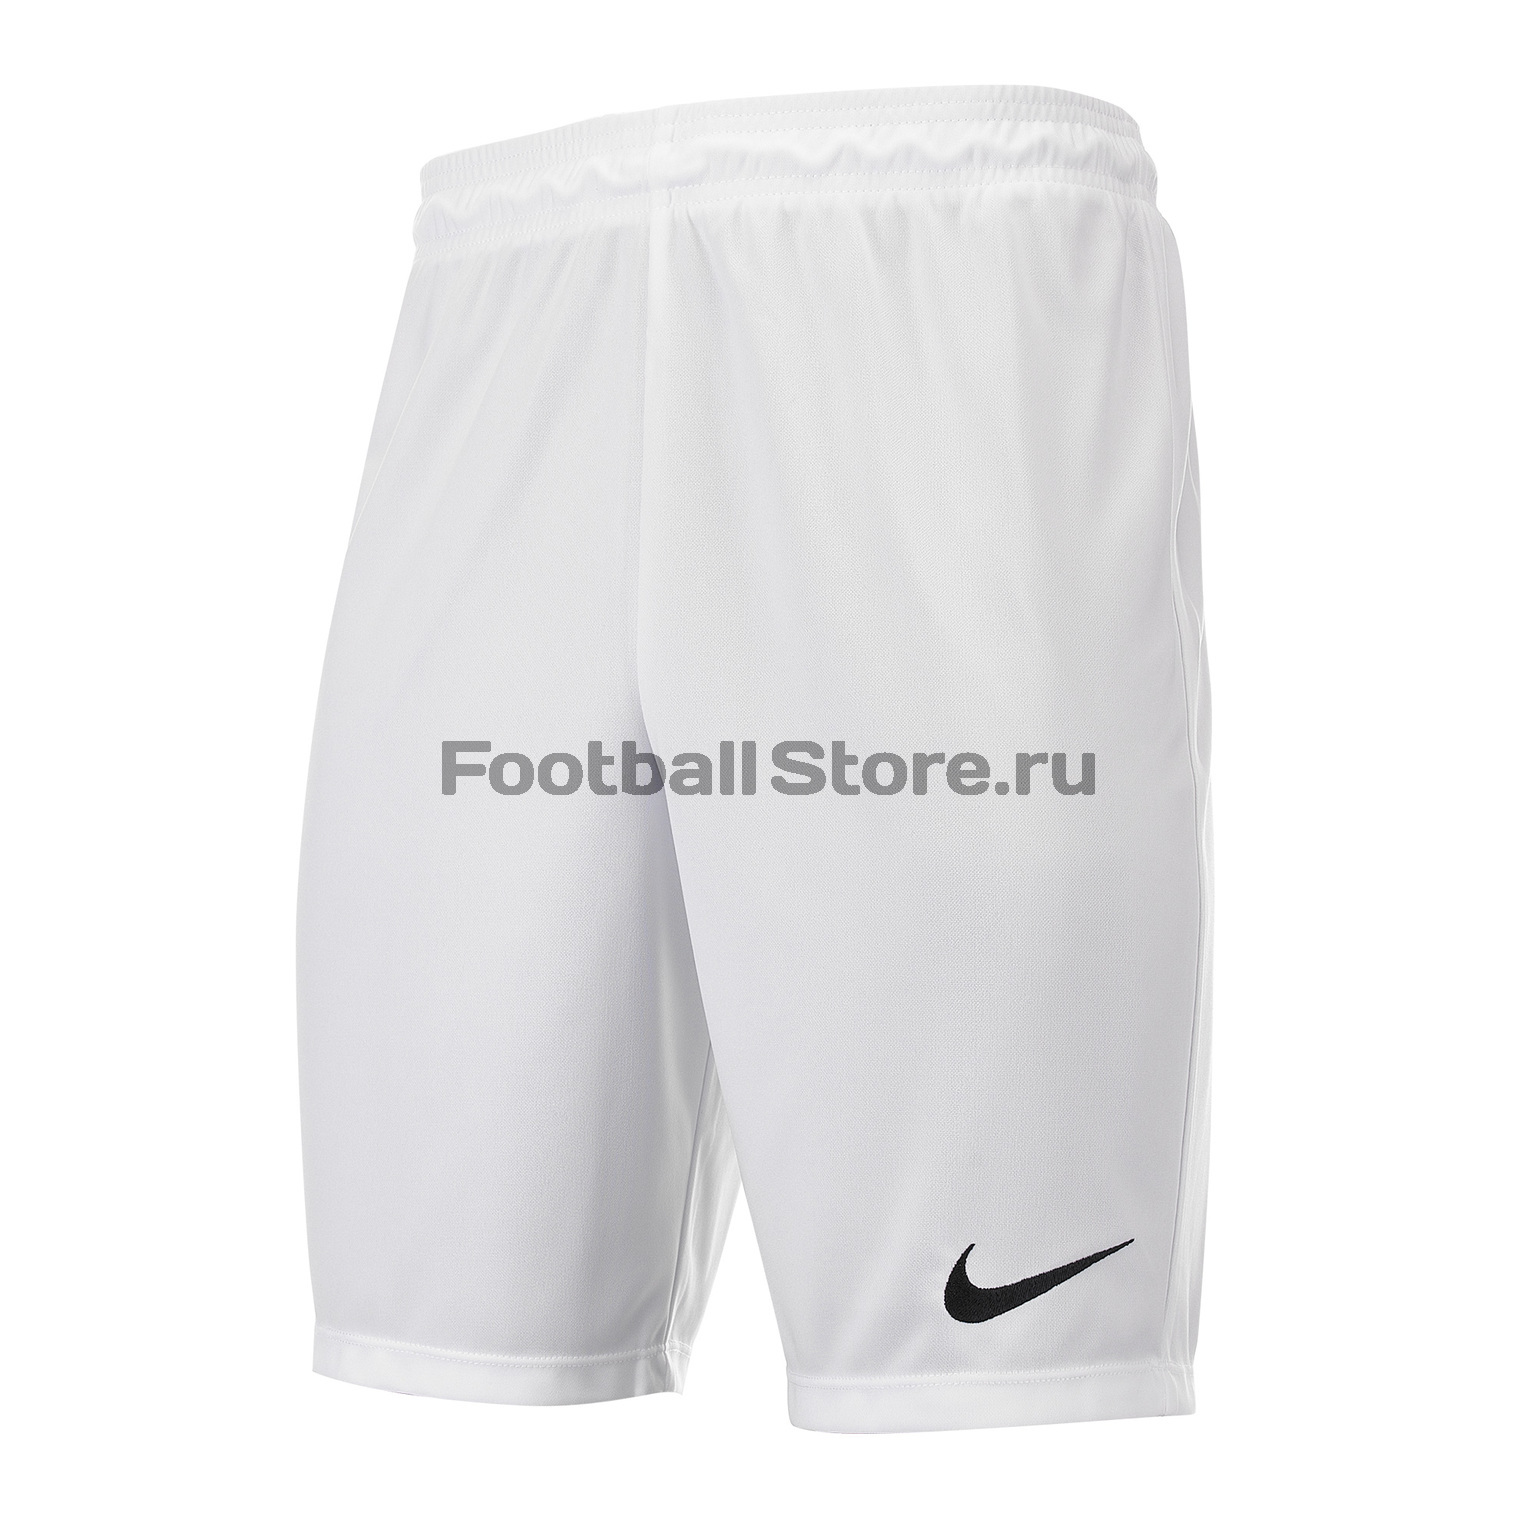 Шорты Nike Park II KNIT Short NB 725887-100 шорты nike шорты игровые nike park ii knit short wb 725903 410